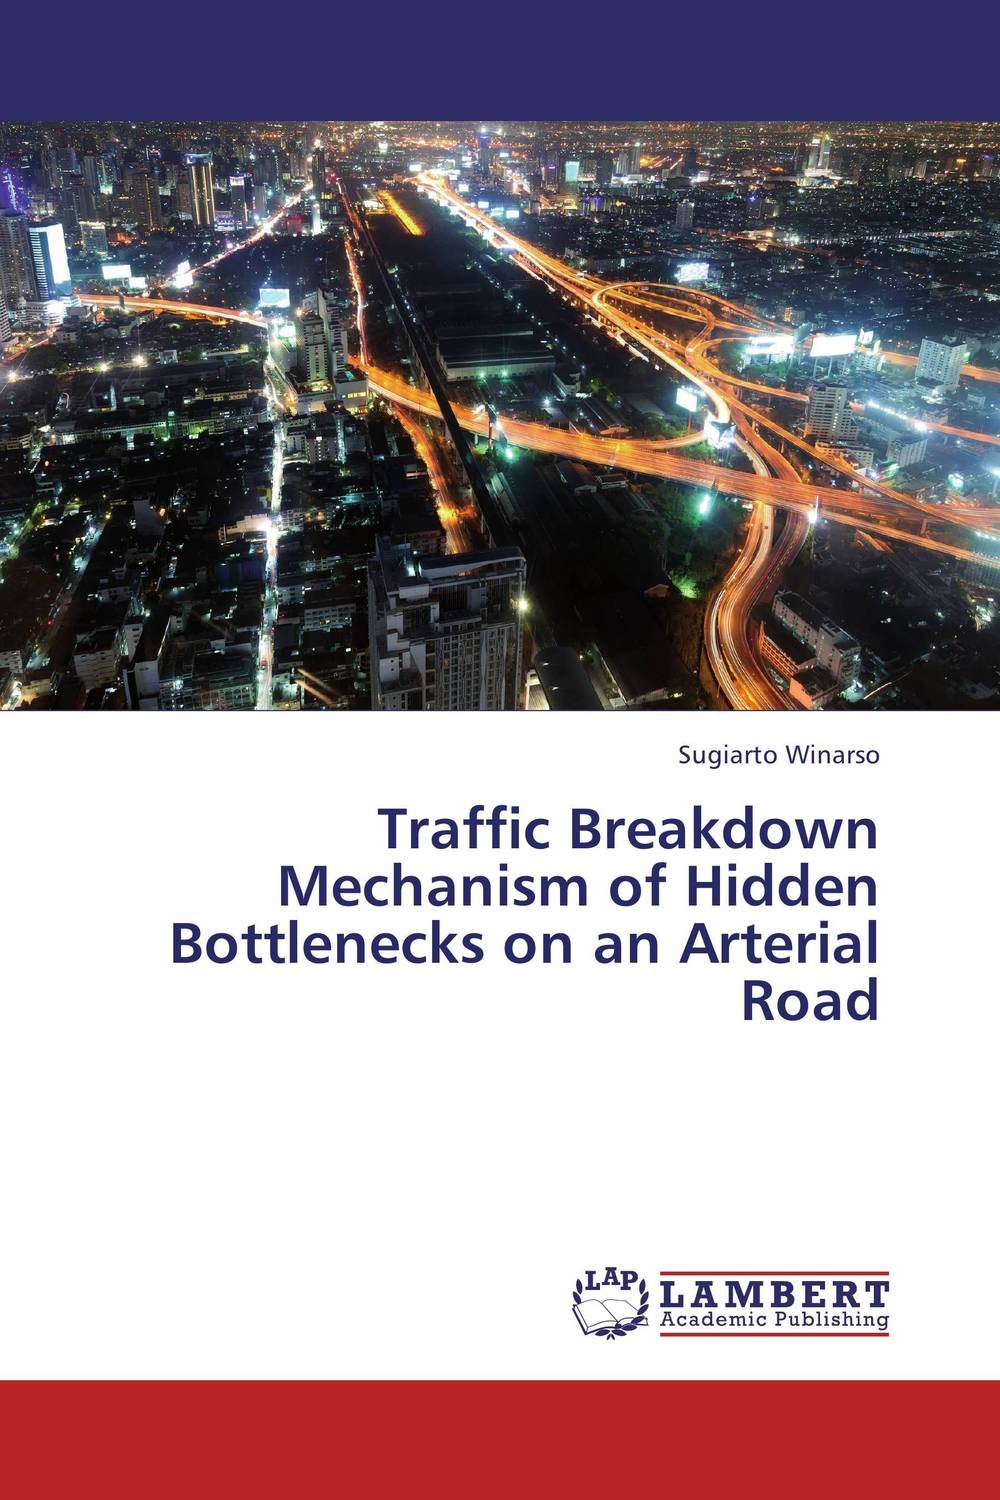 Traffic Breakdown Mechanism of Hidden Bottlenecks on an Arterial Road the viabilities of musyarakah as social protection mechanism